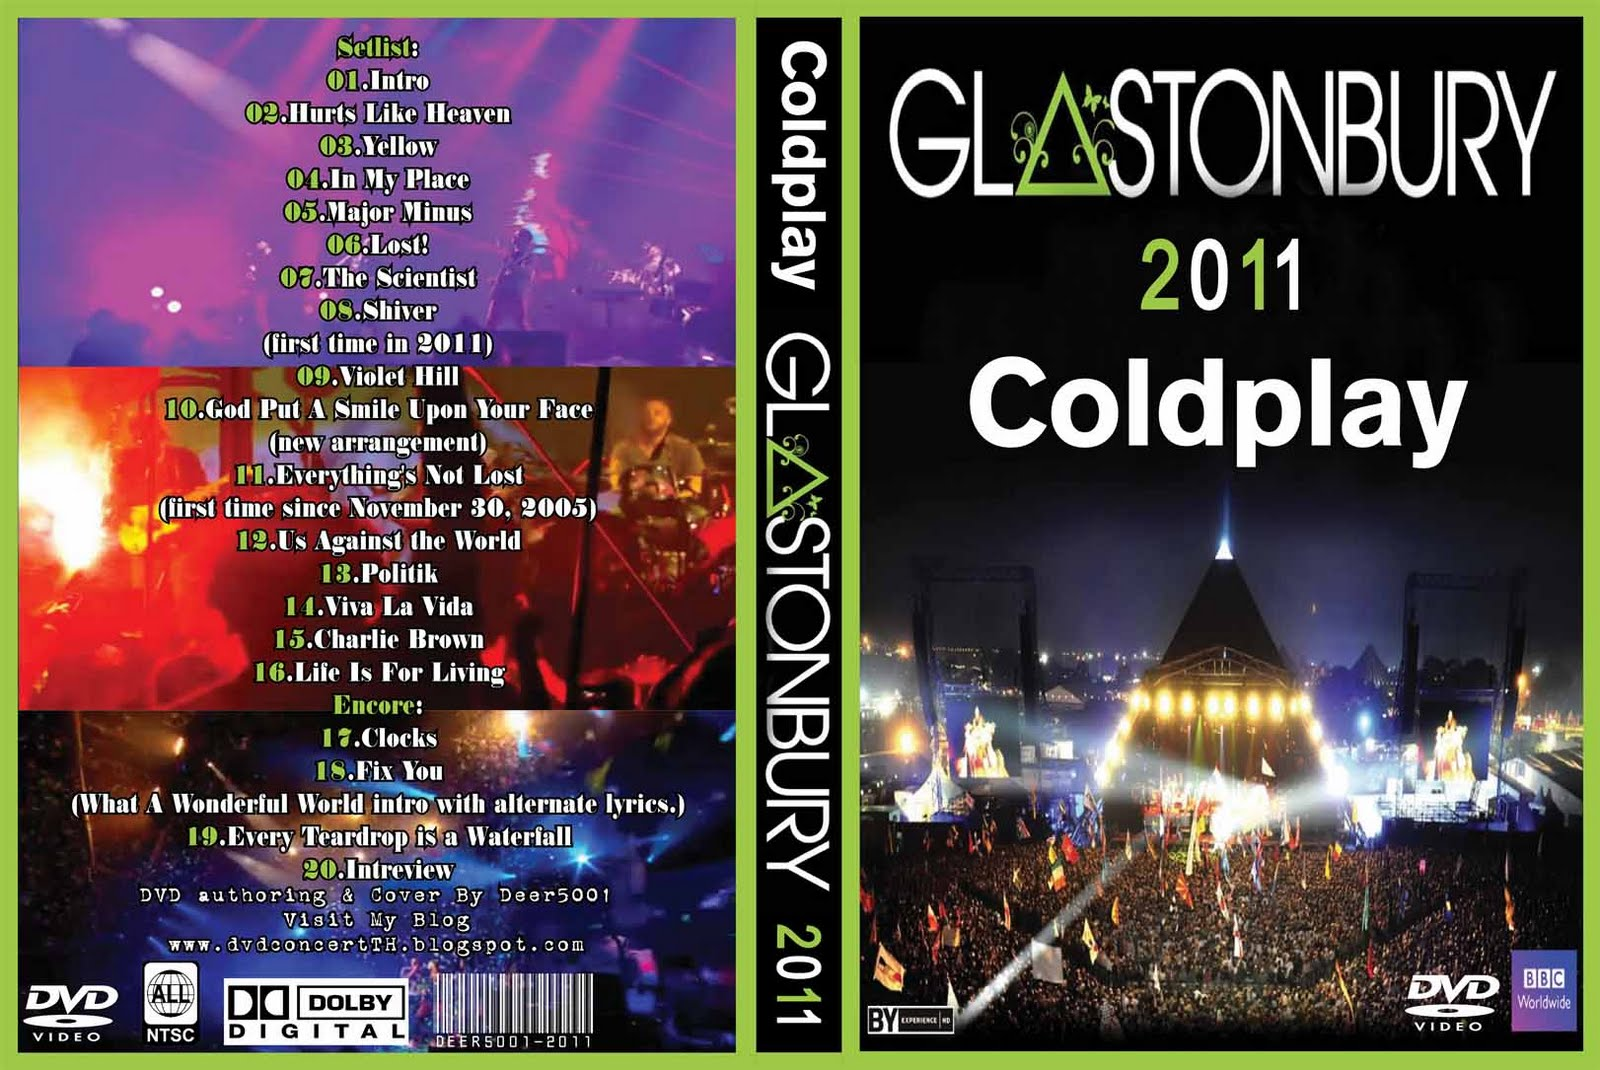 Dvd Concert Th Power By Deer 5001 Coldplay 2011 Live